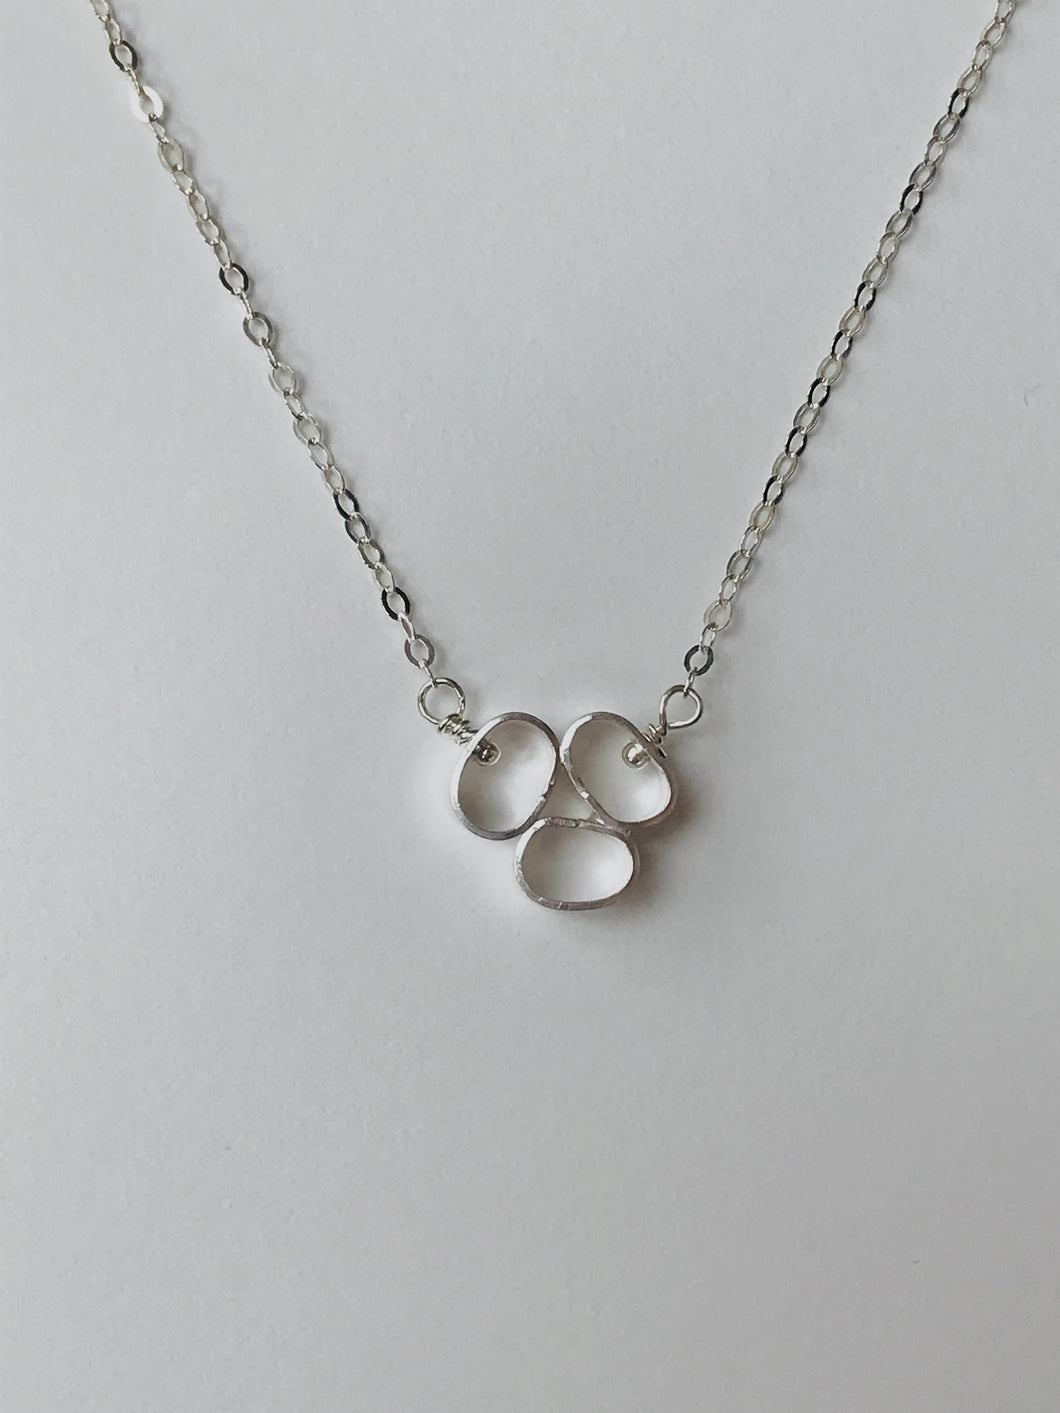 Petite Rock Necklace